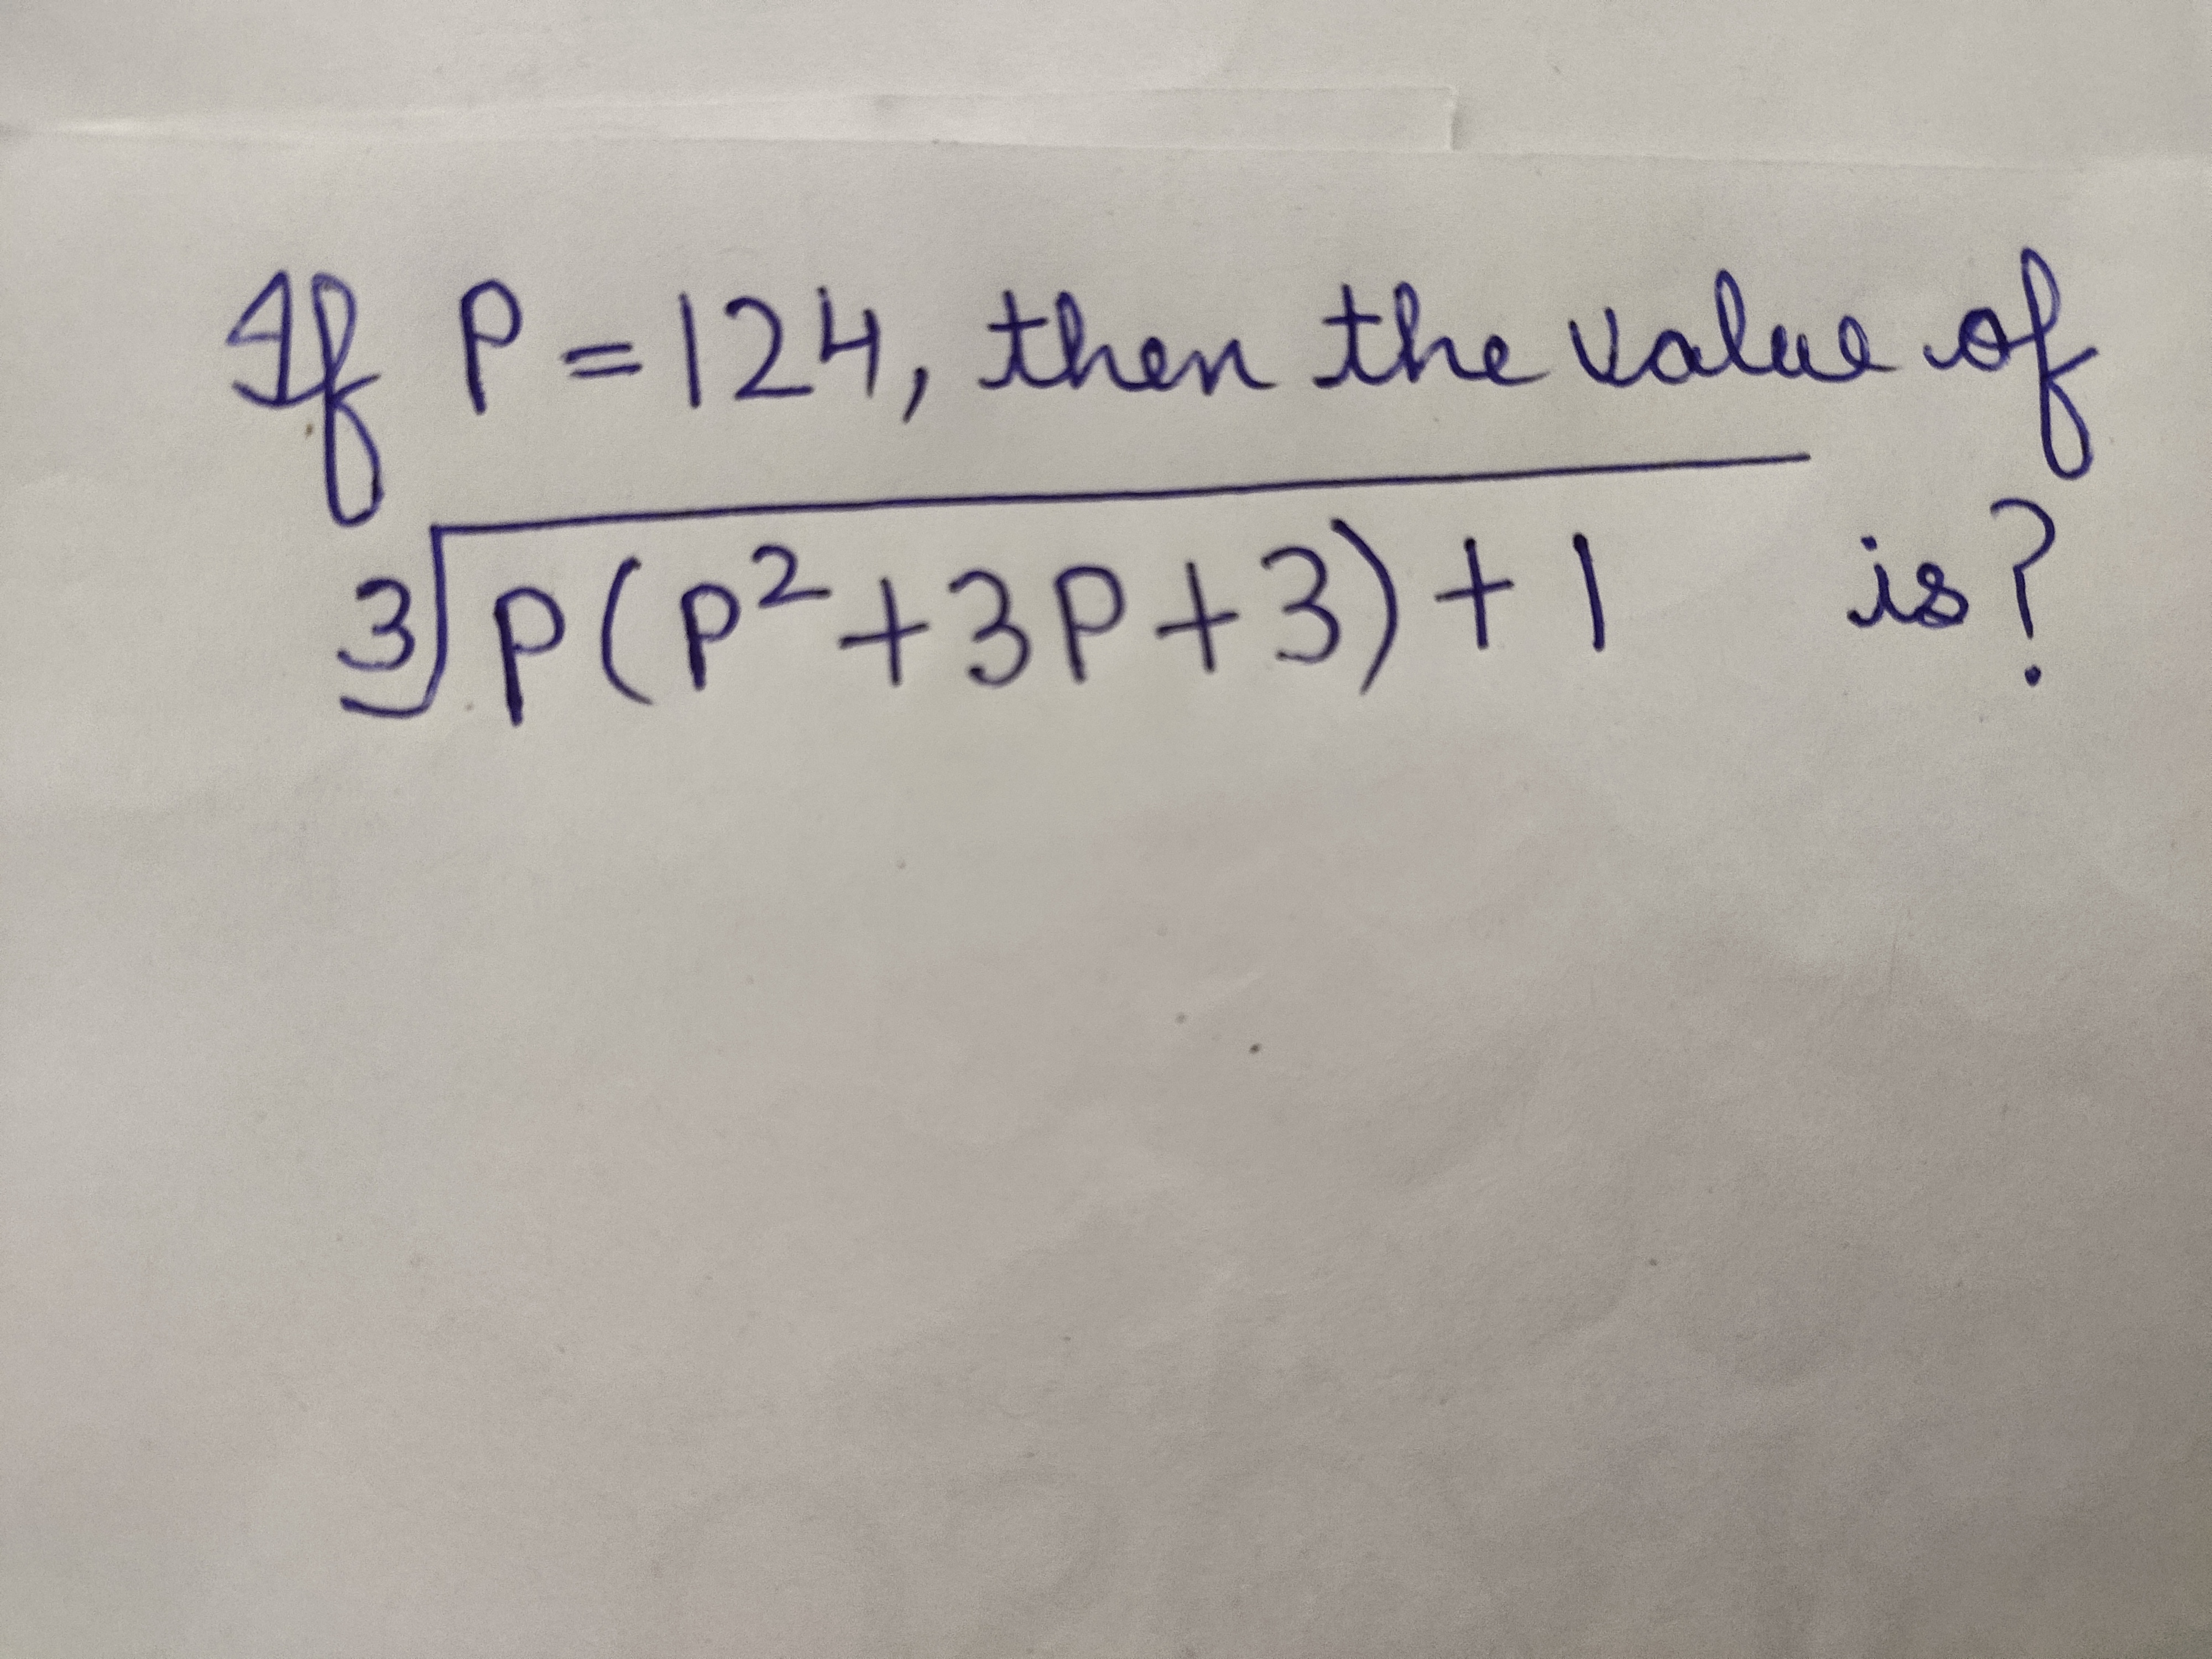 & P=124, then the value of is? 3P(p²+3P+3)+1